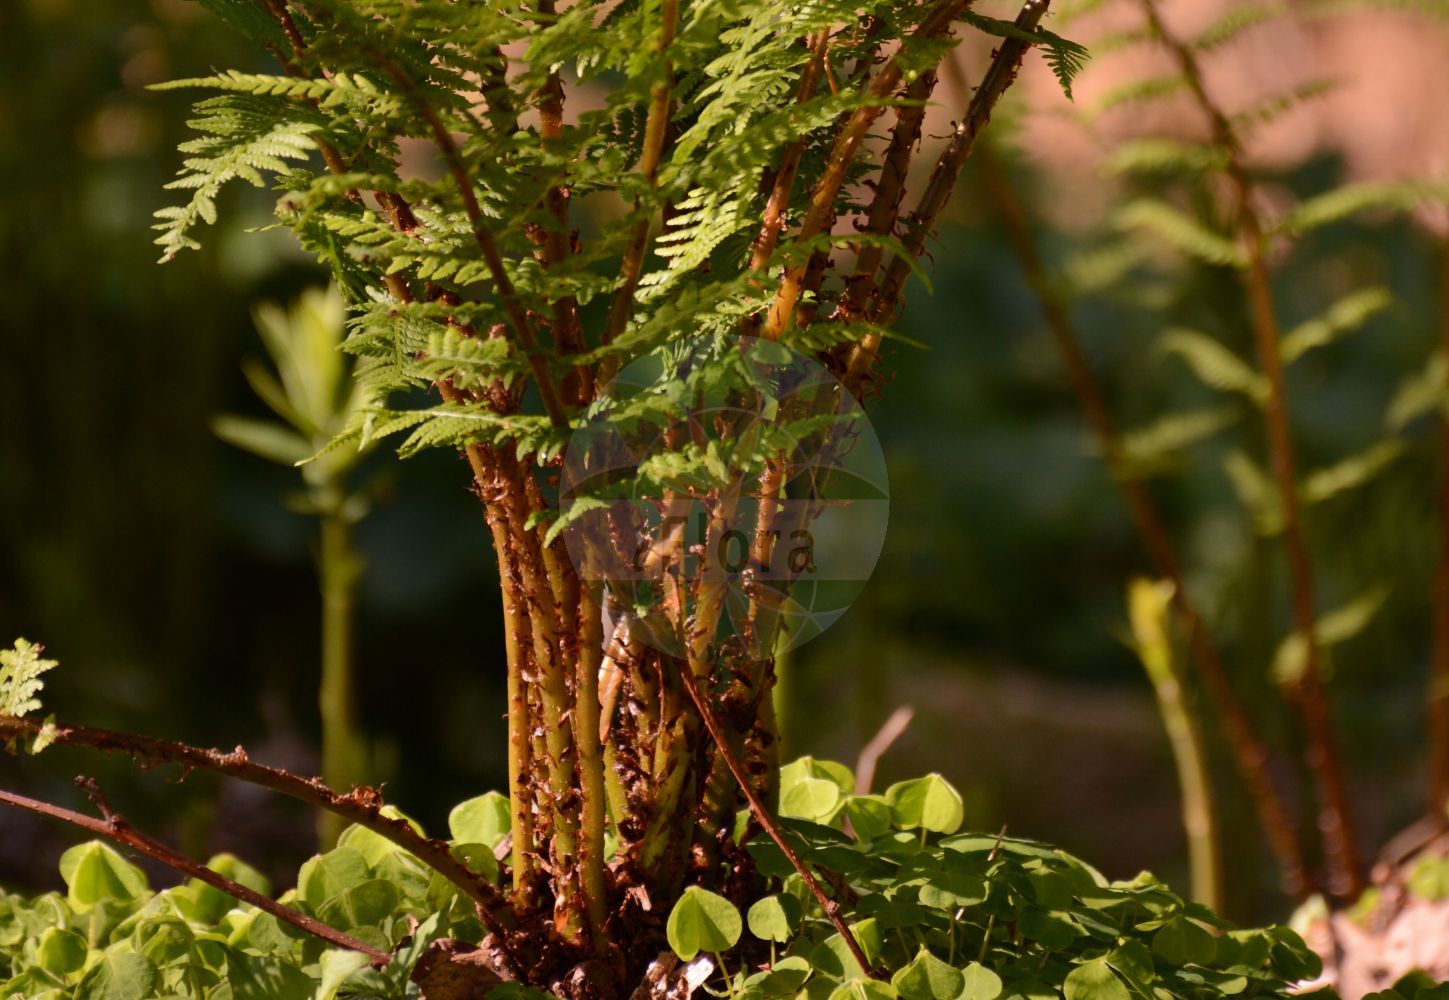 Foto von Athyrium filix-femina (Wald-Frauenfarn - Lady-fern). Das Foto wurde in Marburg, Hessen, Deutschland aufgenommen. ---- Photo of Athyrium filix-femina (Wald-Frauenfarn - Lady-fern).The picture was taken in Marburg, Hesse, Germany. (Athyrium filix-femina,Wald-Frauenfarn,Lady-fern,Asplenium filix-femina,Asplenium rhaeticum,Athyrium azoricum,Polypodium axillare,Polypodium filix-femina,Polypodium rhaeticum,Common Woodland Lady Fern,Athyrium,Frauenfarn,Lady-fern,Athyriaceae,Lady-Fern family,Frauenfarngewaechse)